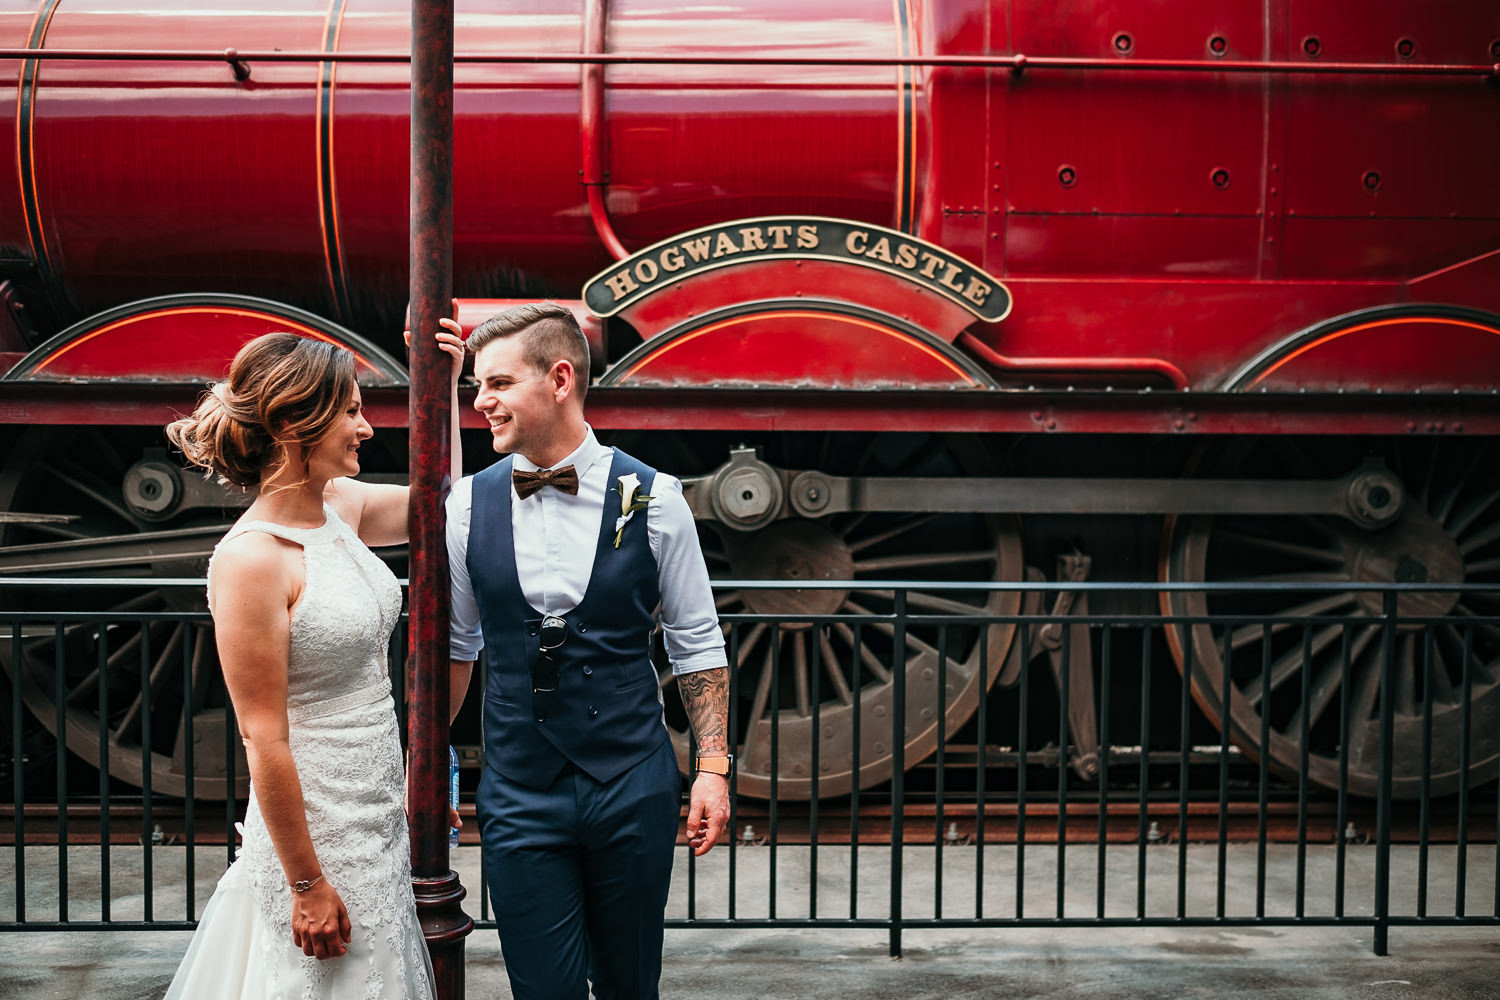 newlyweds posing in front of hogwarts express train